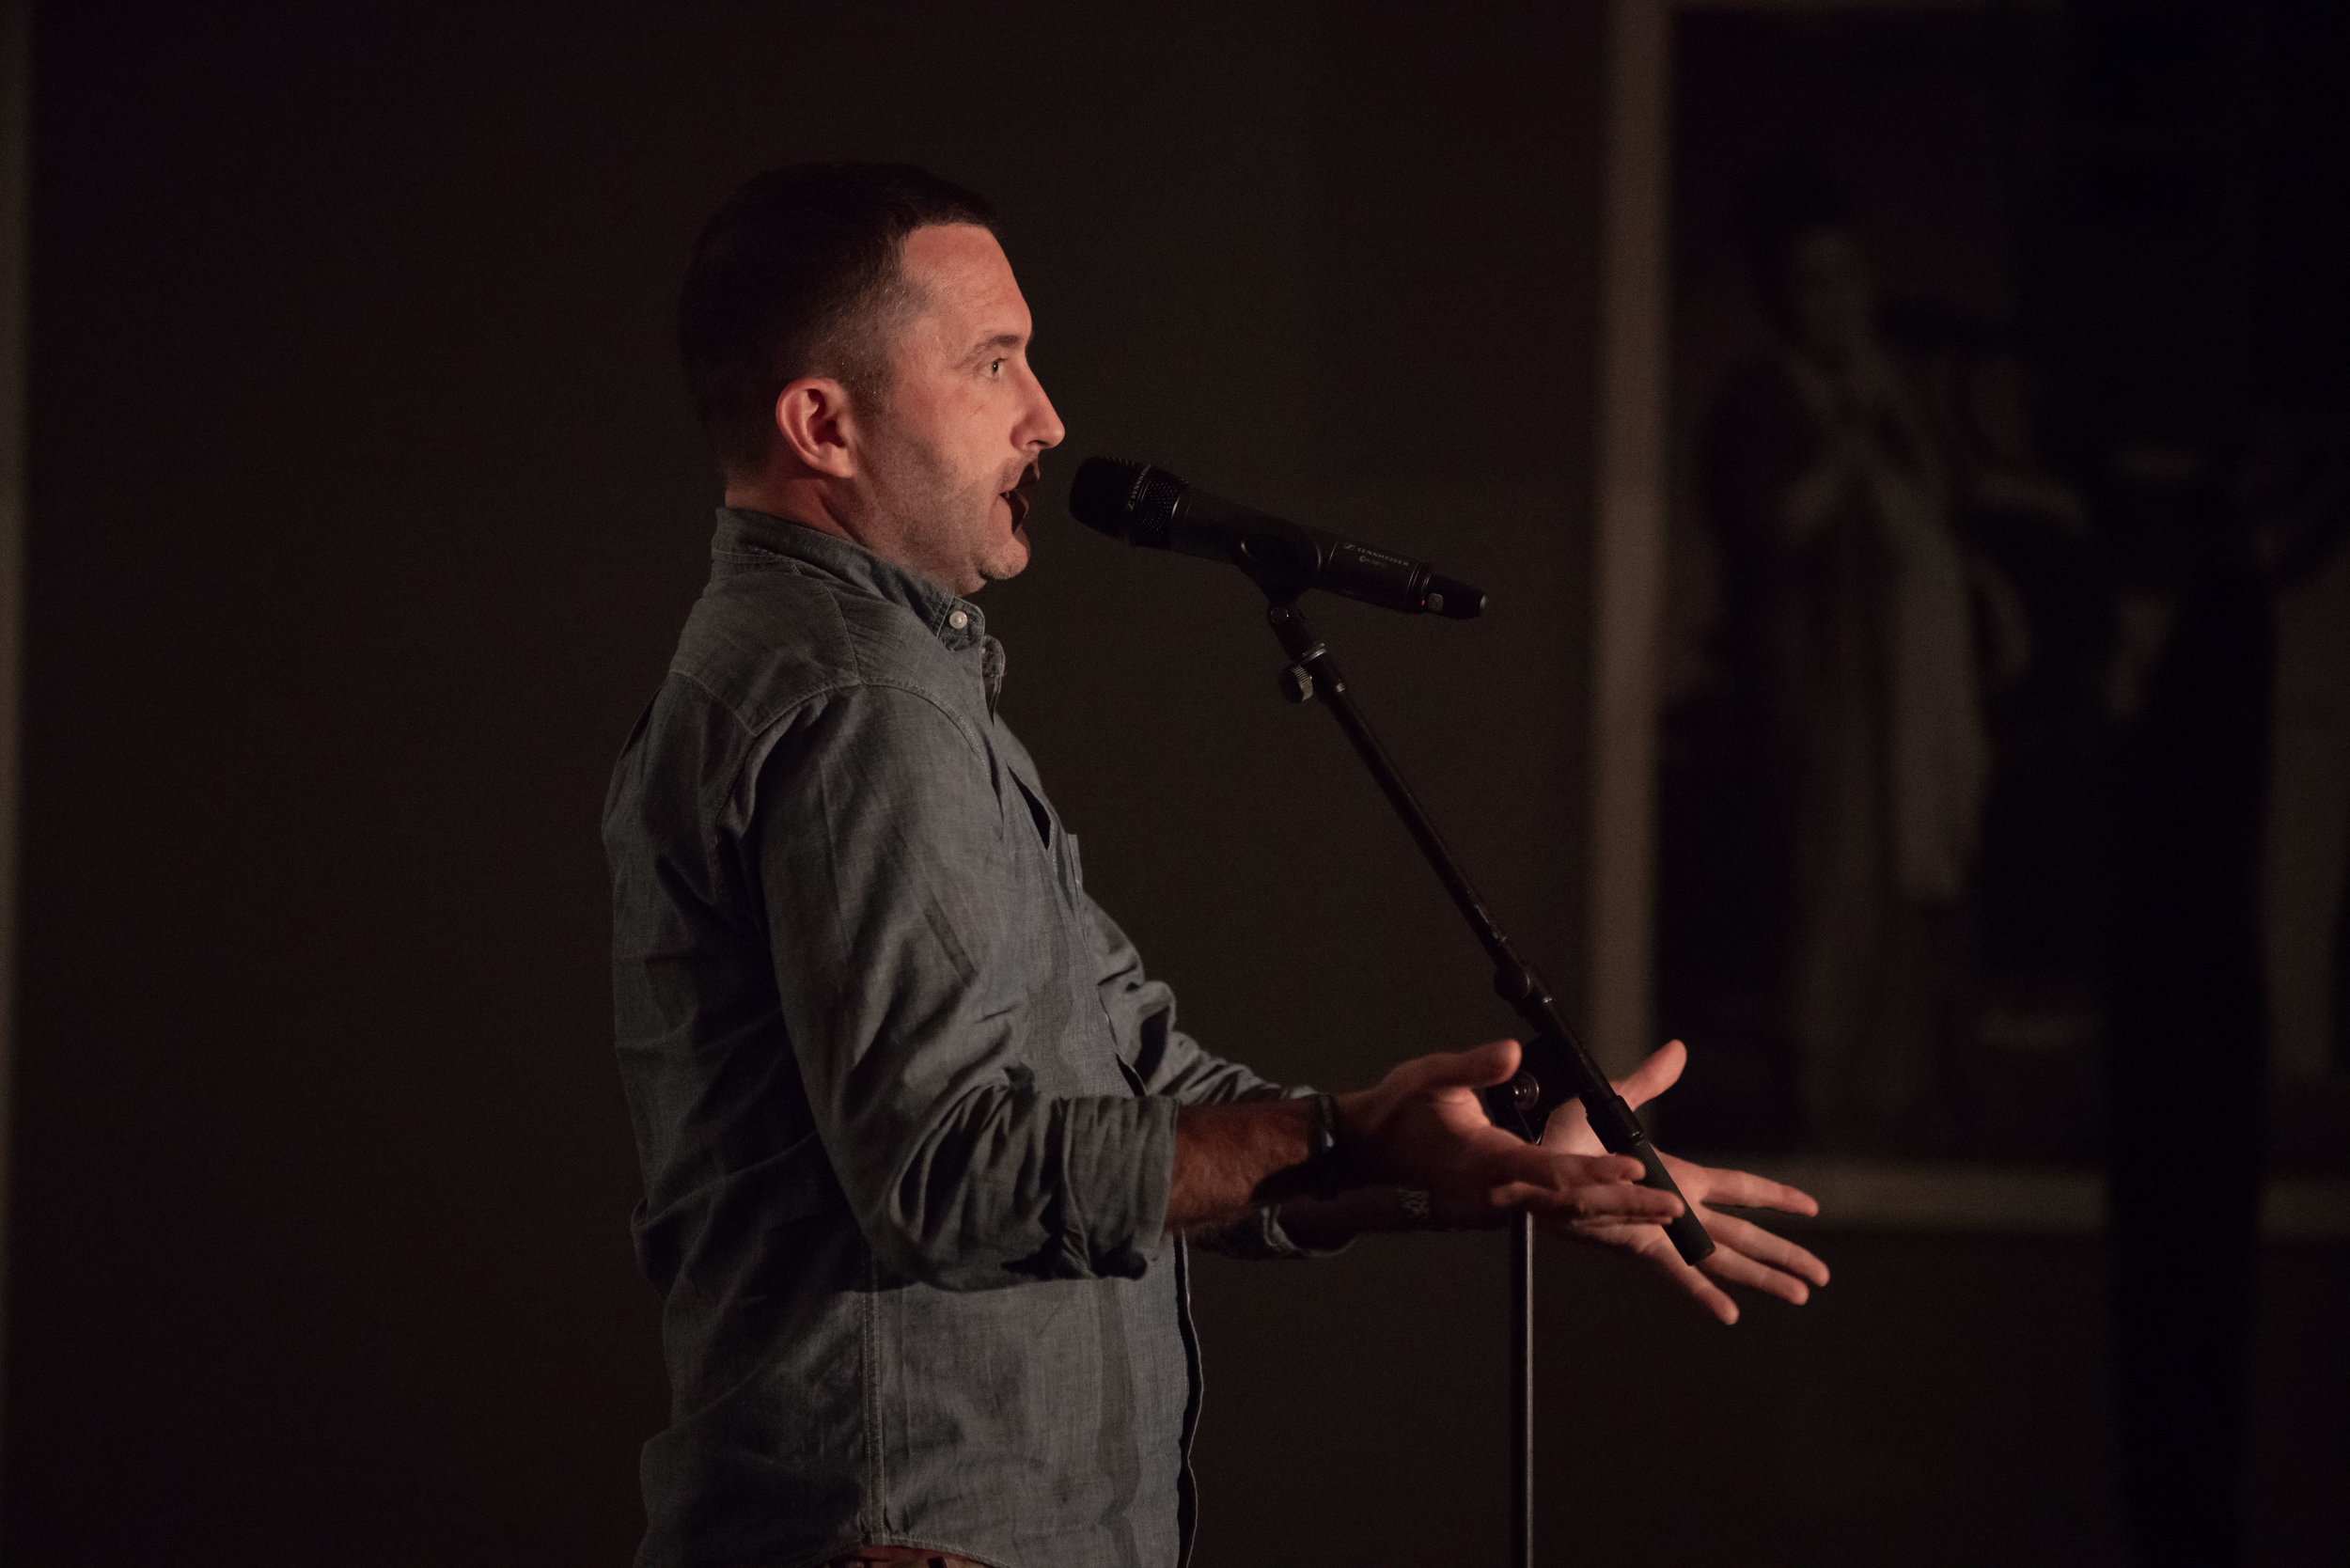 Luke Rosen shares his story with the Story Collider audience at The Little Nell in Aspen, CO in June 2019. Photo by Dale Ramos.